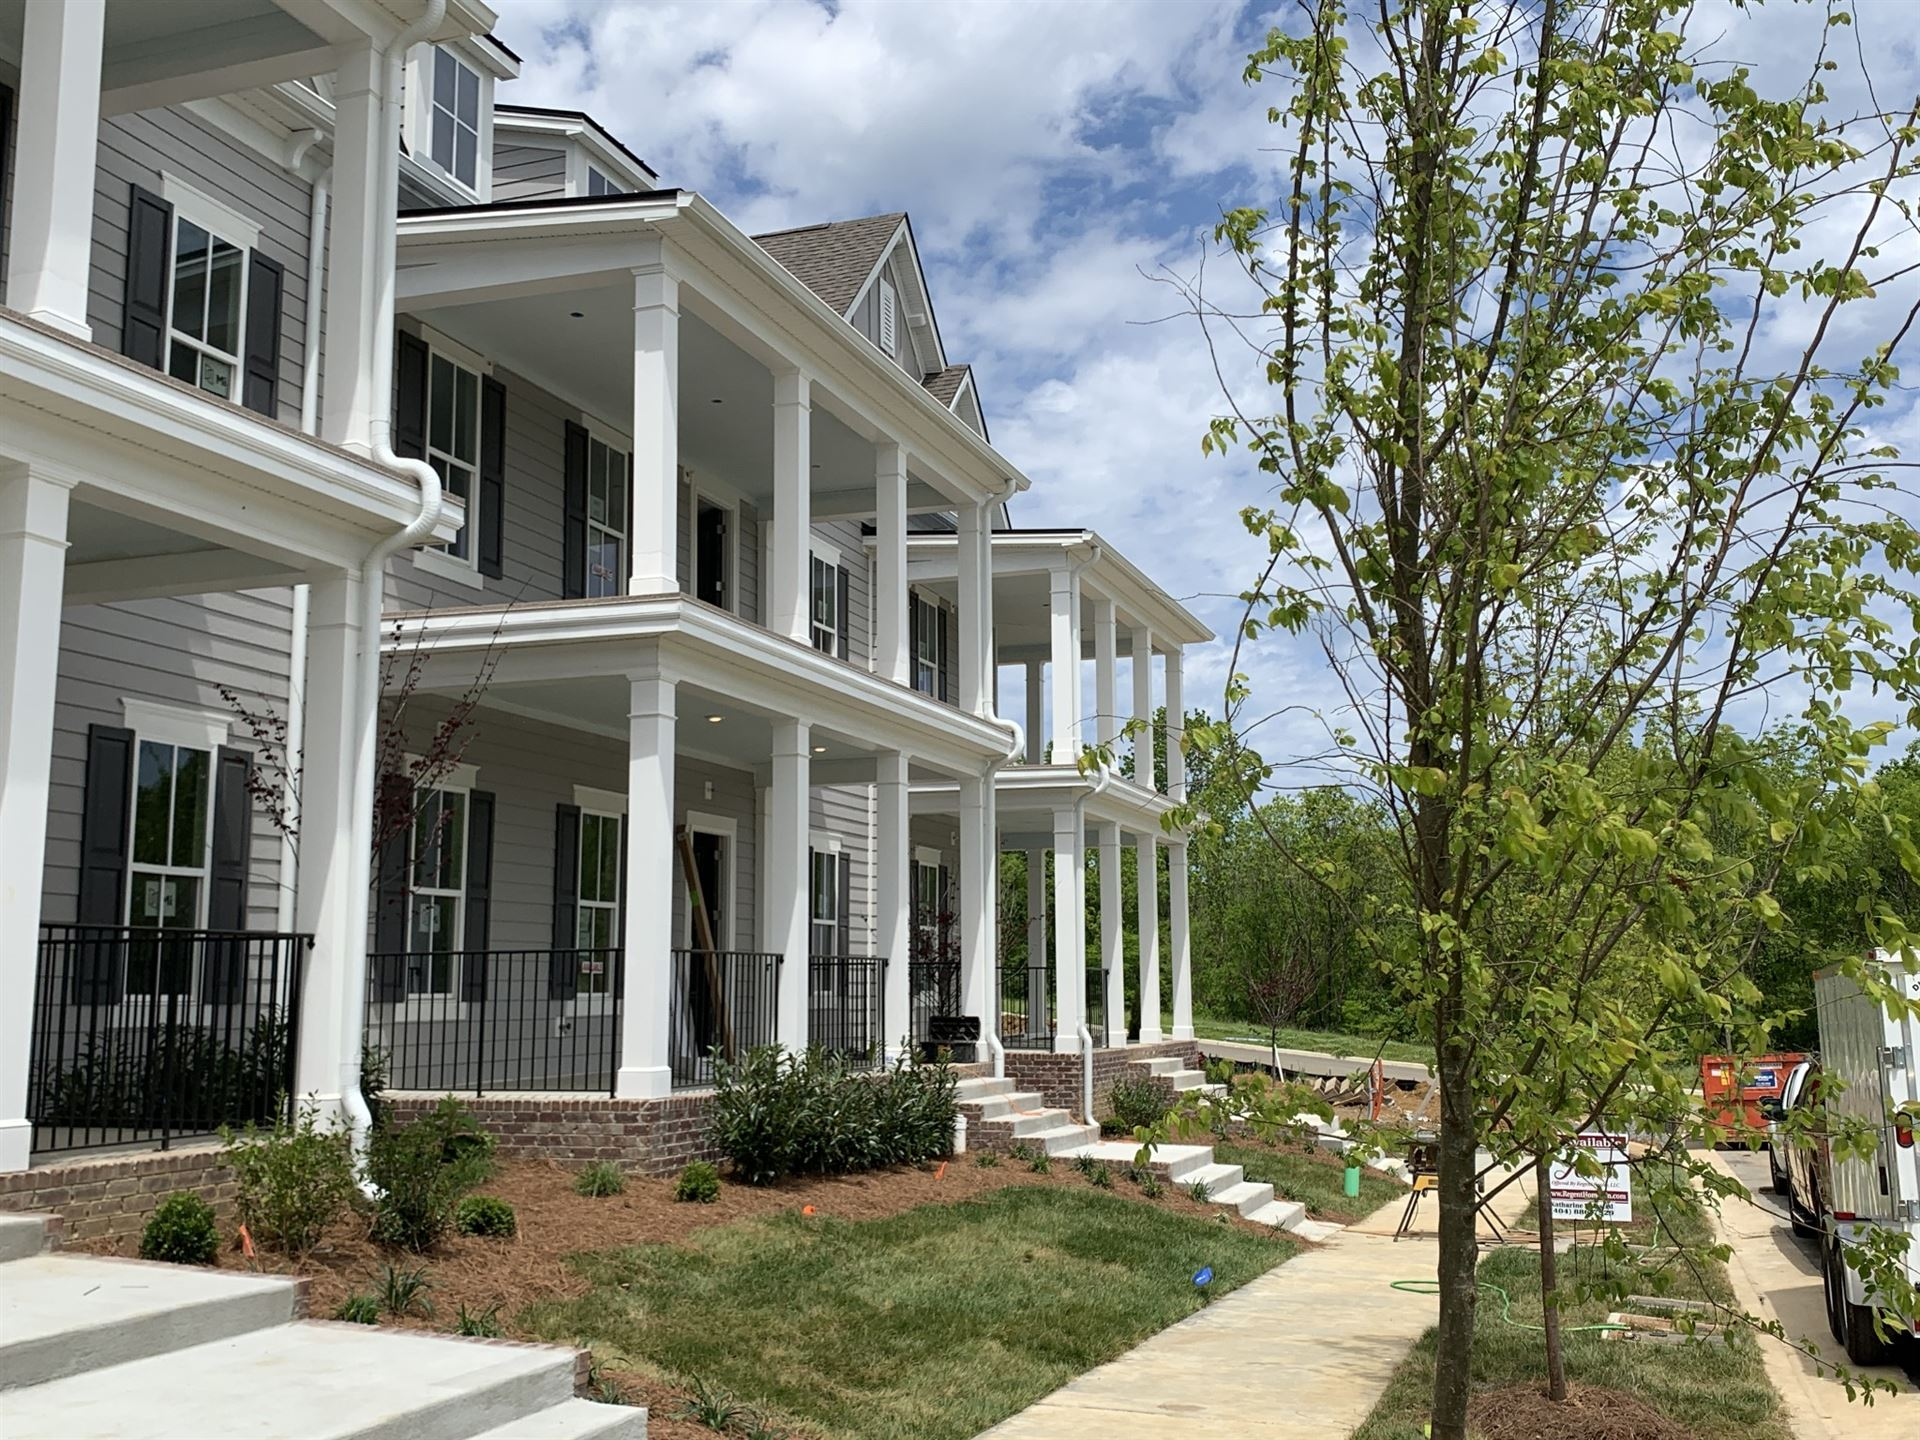 Photo of 2333 Fairchild Circle #203, Nolensville, TN 37135 (MLS # 2134432)